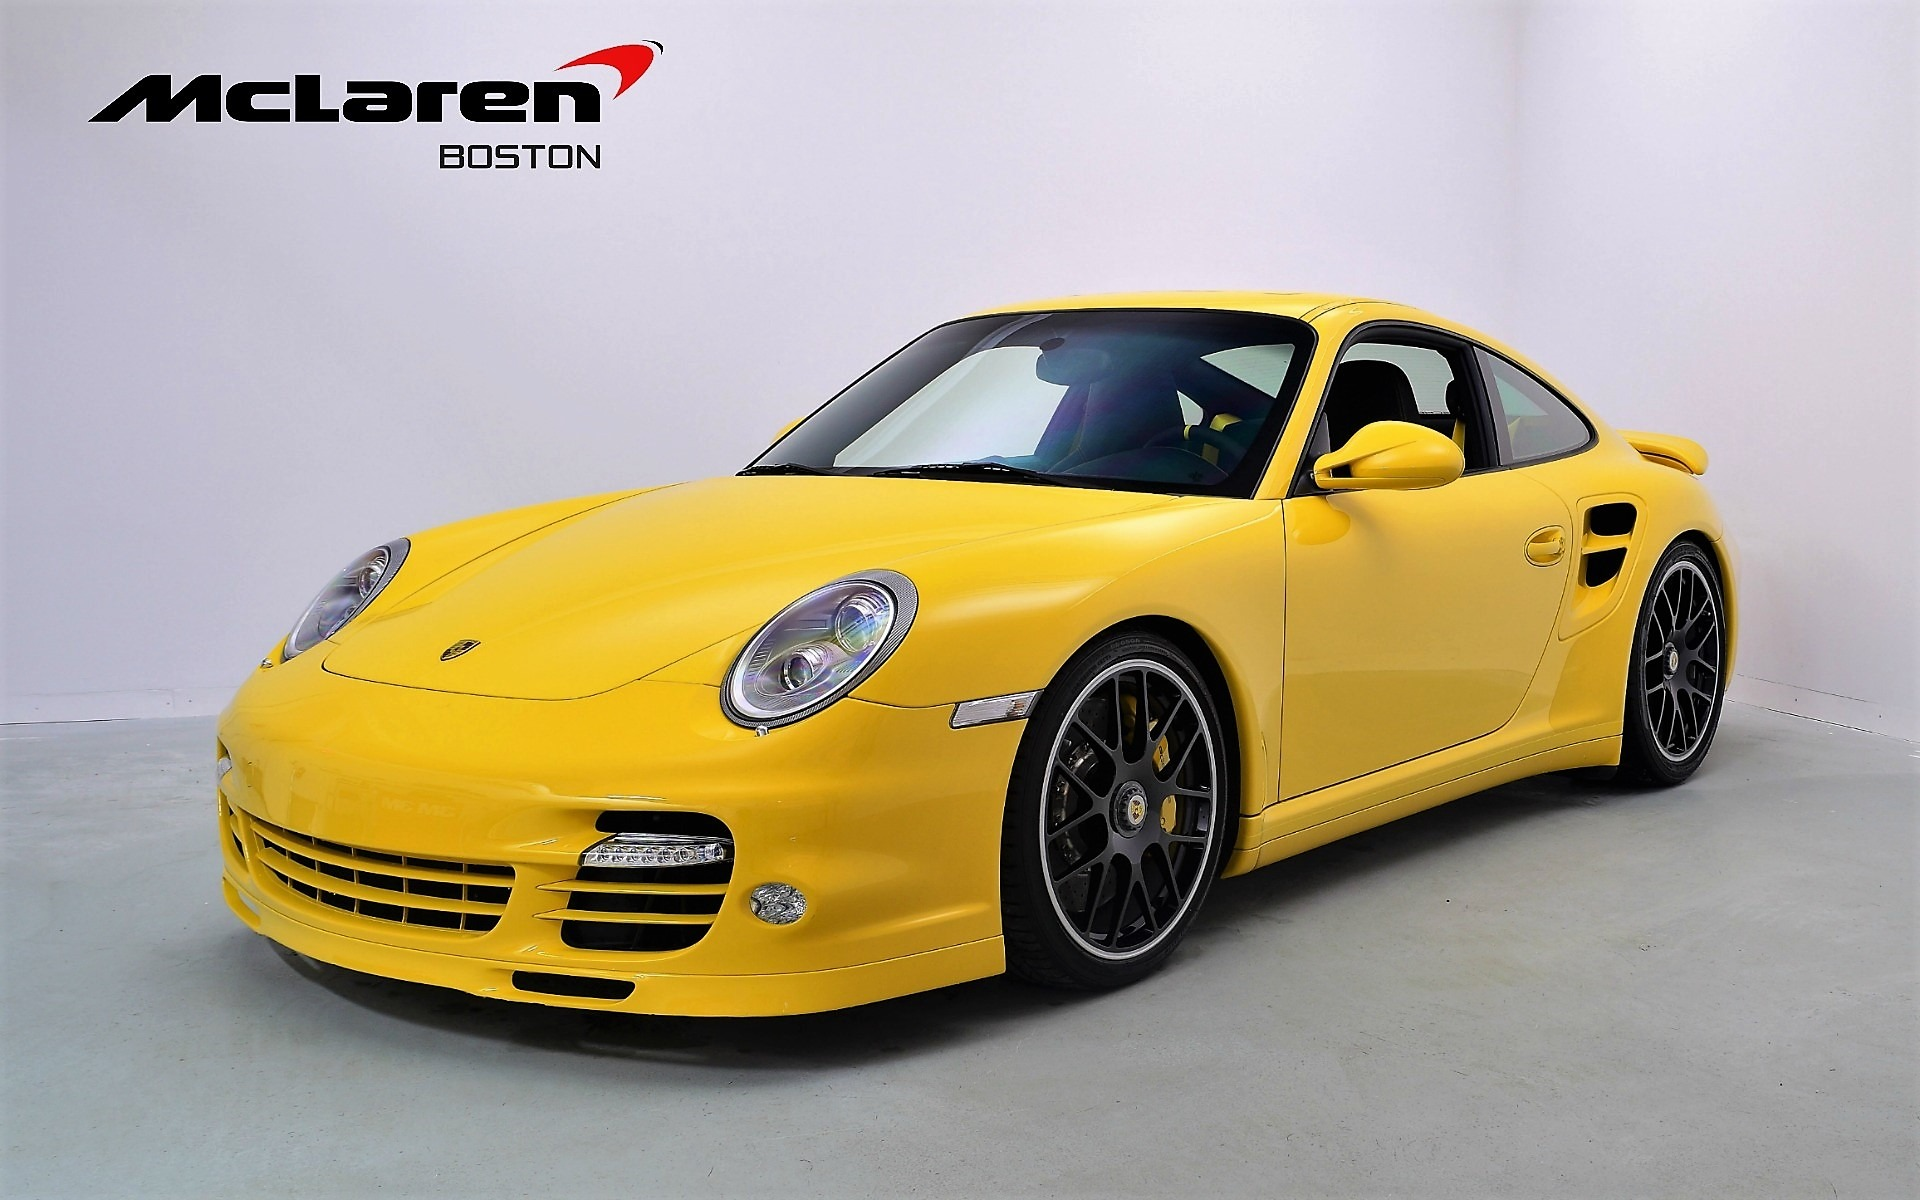 2011 porsche 911 turbo turbo s for sale in norwell ma 766193 mclaren boston. Black Bedroom Furniture Sets. Home Design Ideas